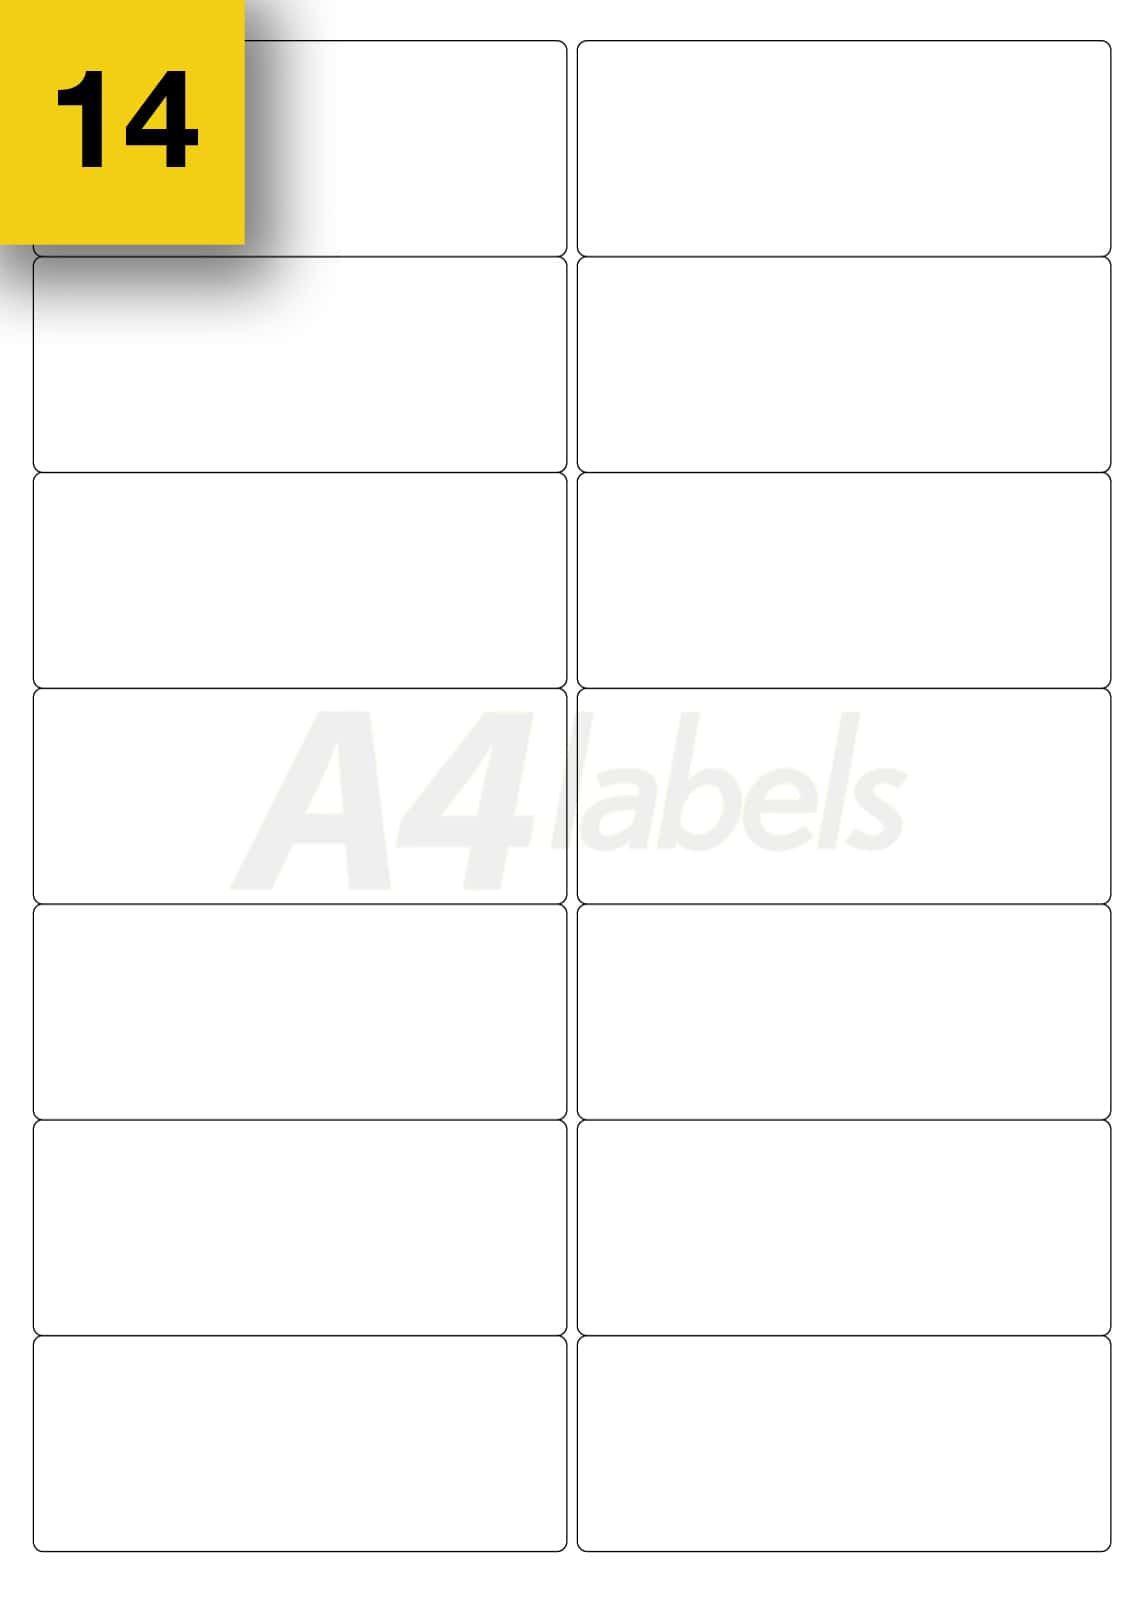 Label Template 4 Per Sheet Landscape And Avery Shipping Label 4 Per Sheet Template